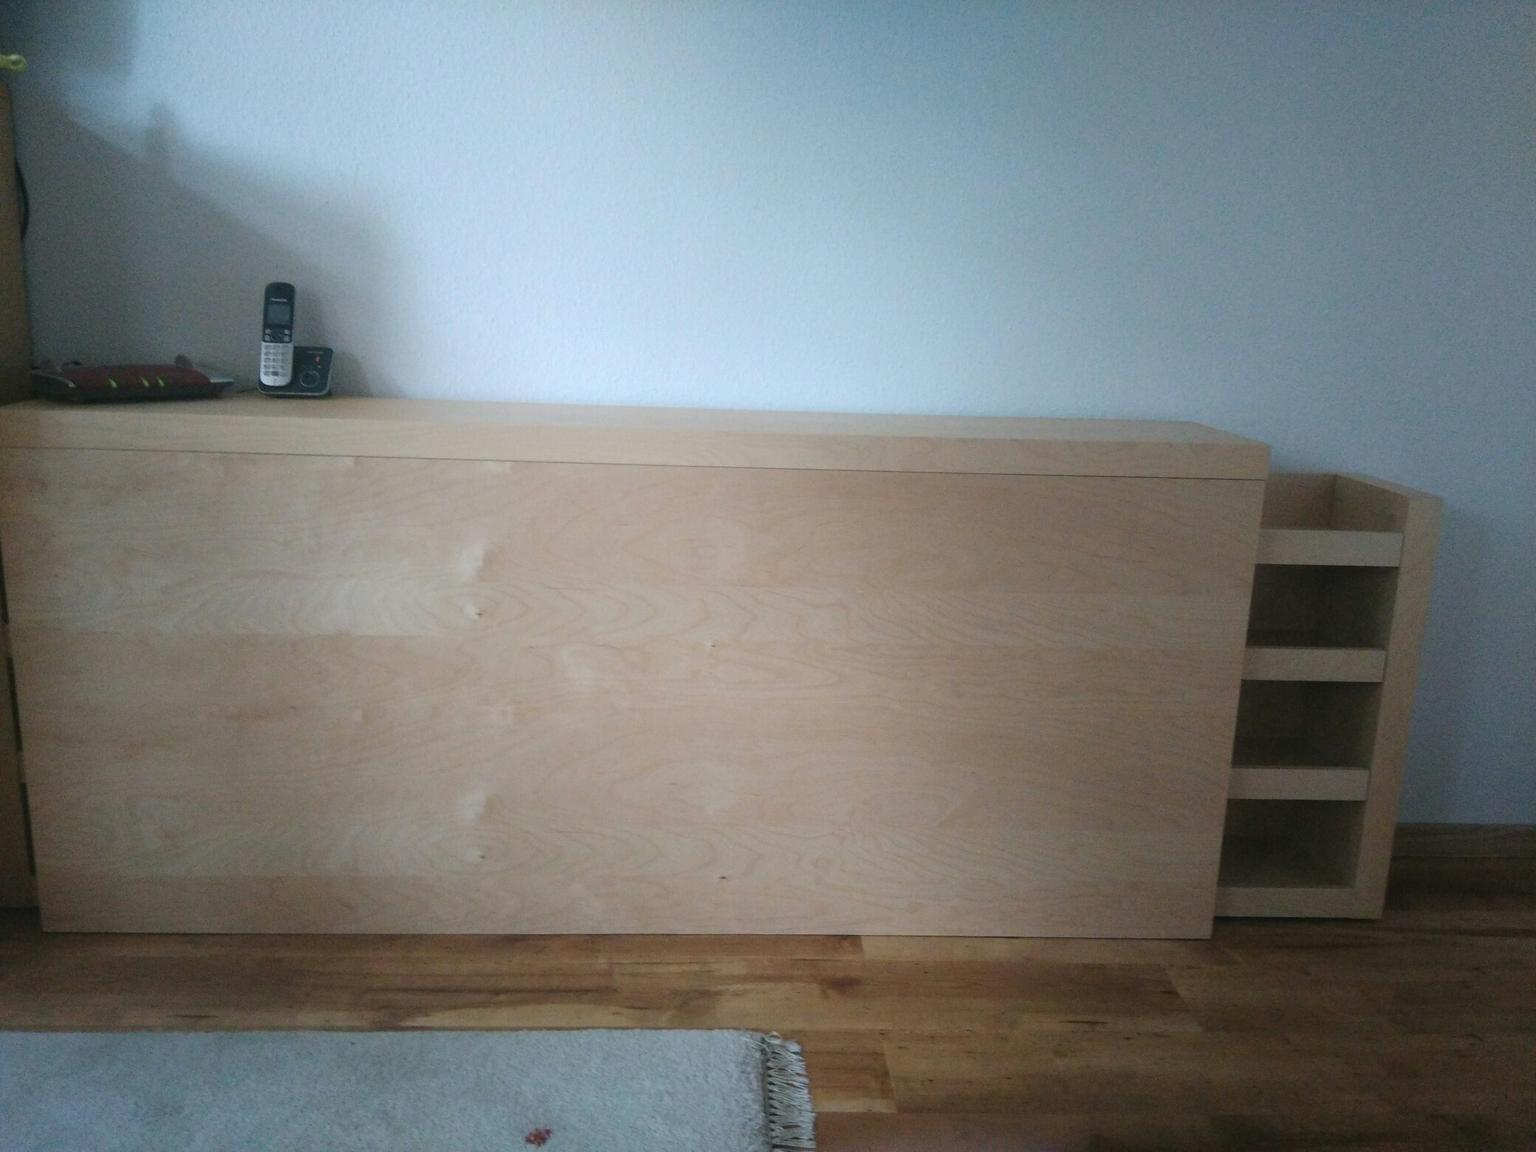 Bett Kopfteil Regal Fur Ikea Malm Bett In 26409 Wittmund For 40